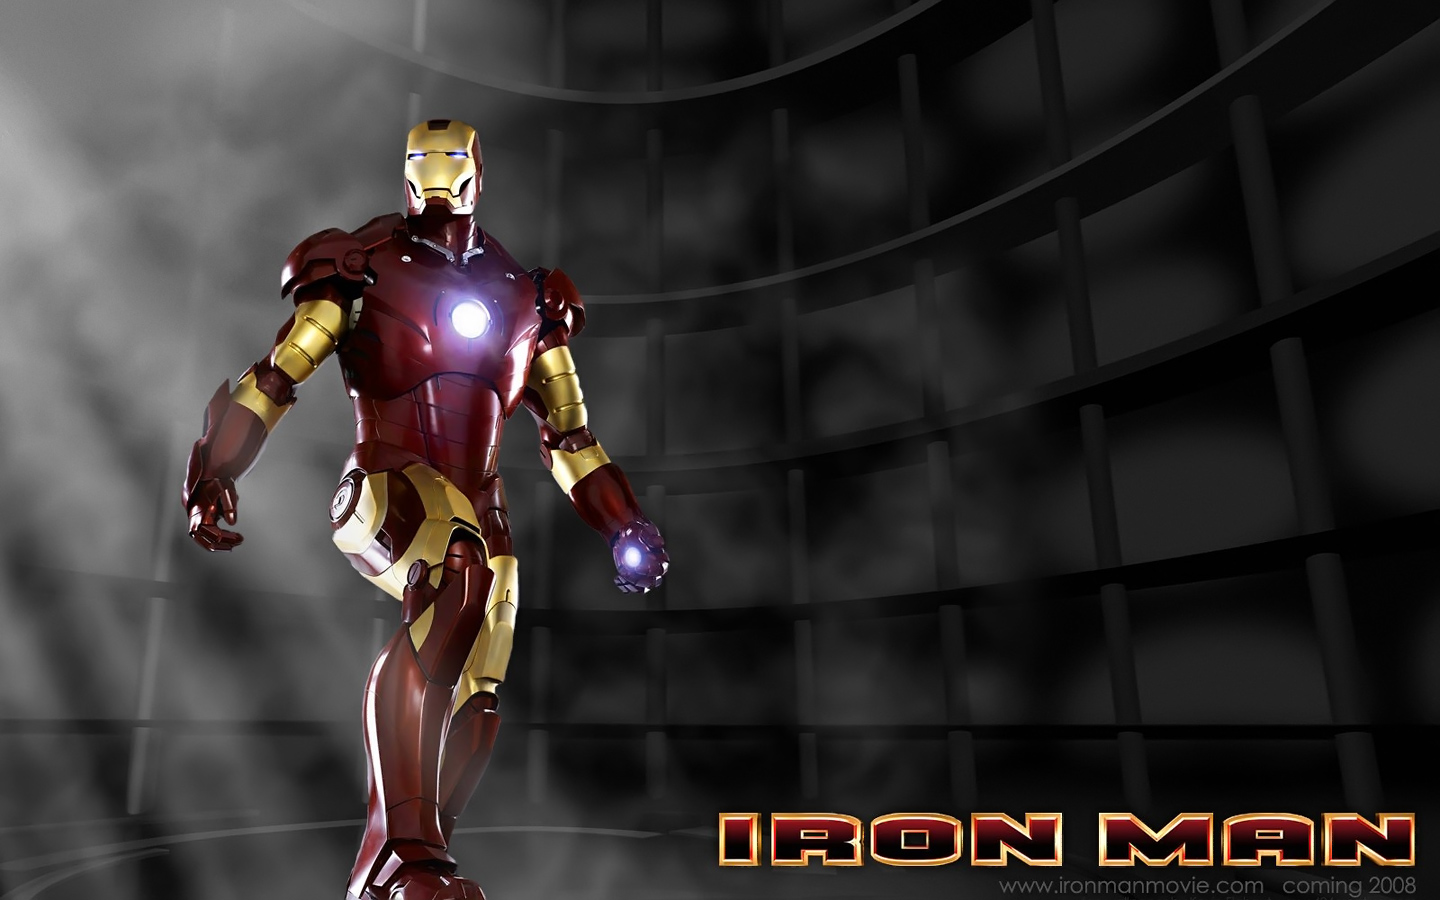 Im genes full hd de iron man taringa - Image de iron man ...